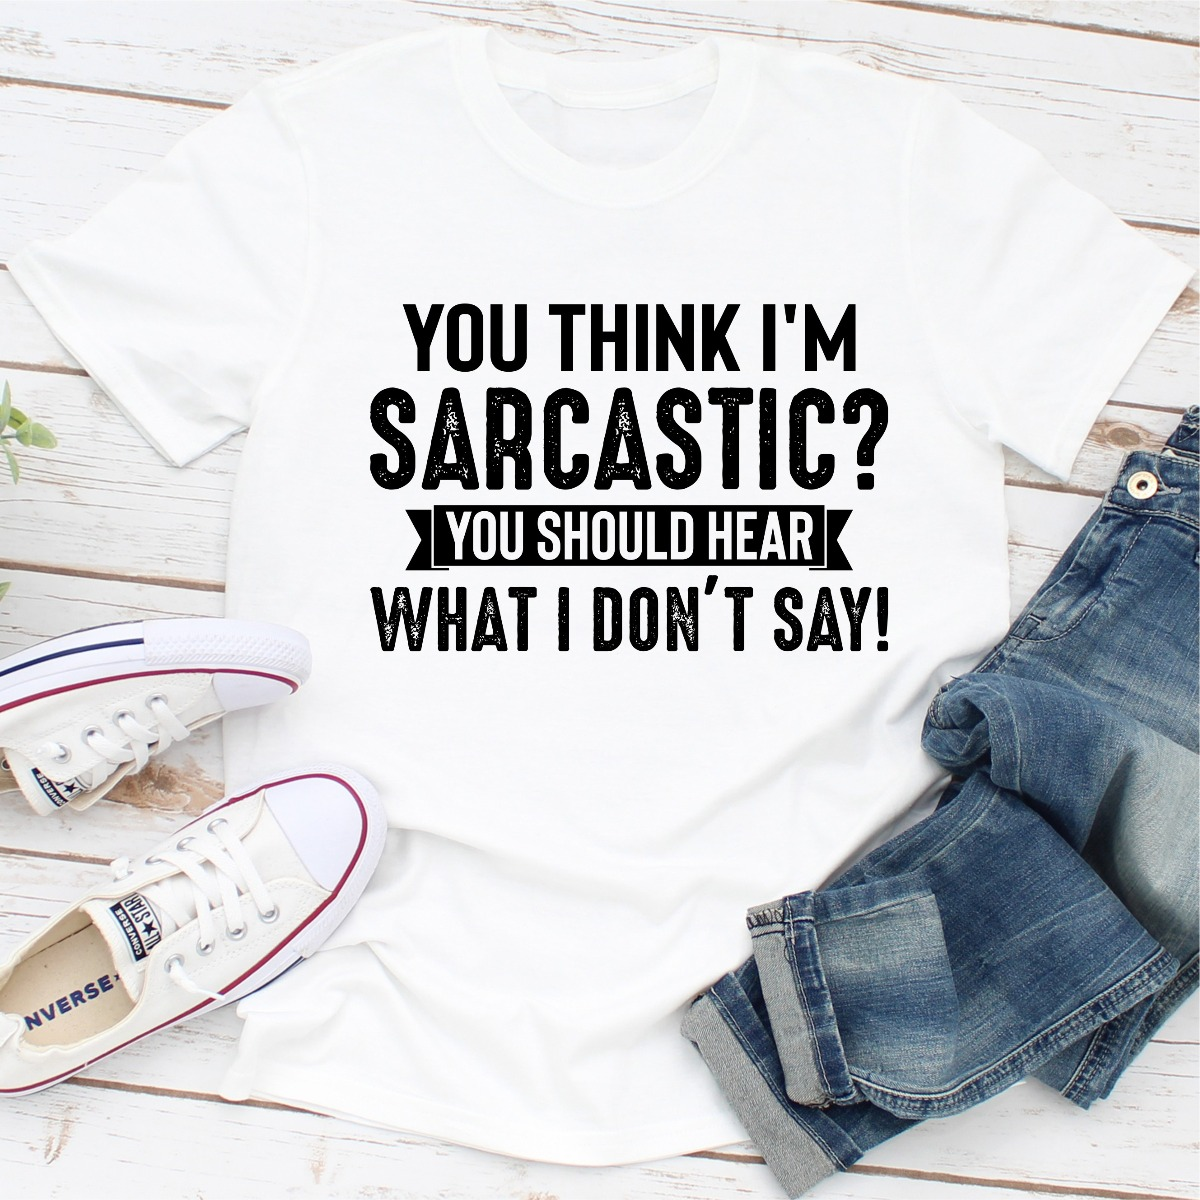 You Think I'm Sarcastic? You Should Hear What I Don't Say